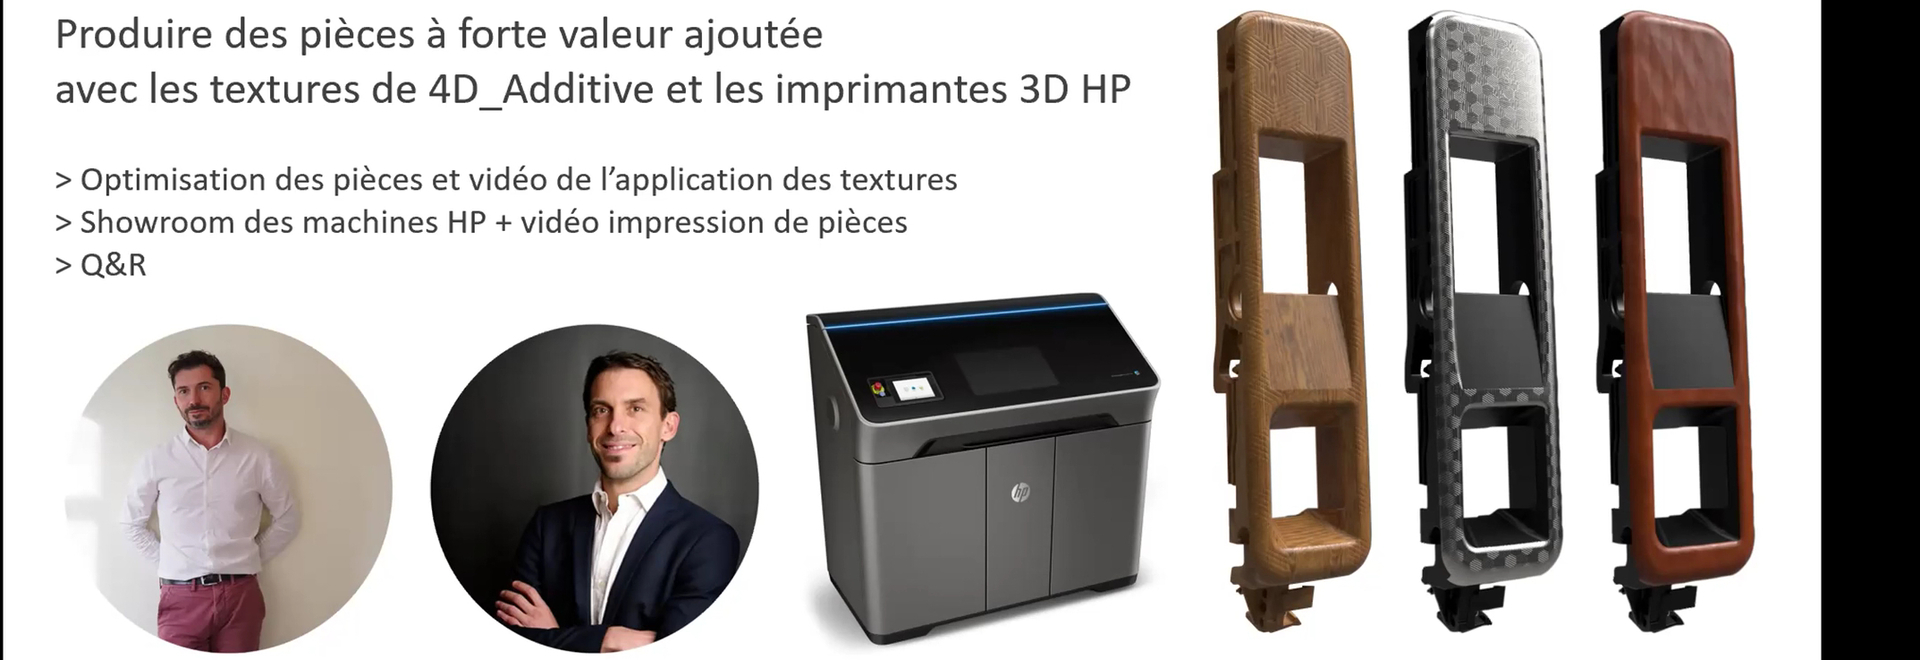 30' Webinar Producing high value-added textured parts with 4D_Additive textures and HP 3D printers